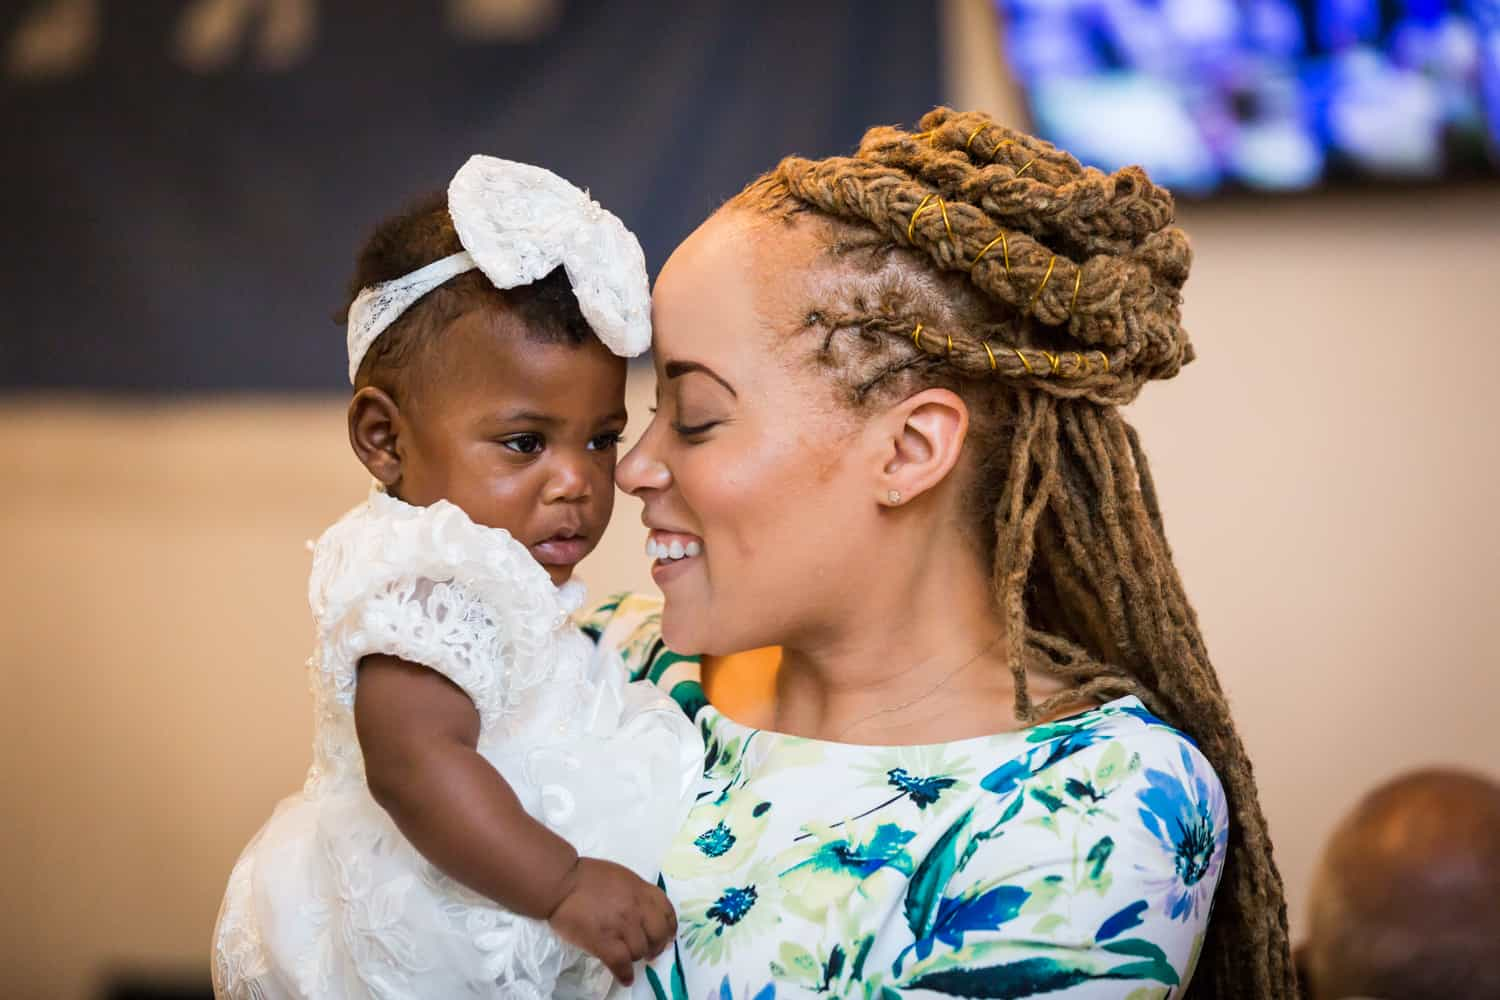 Woman with braided hair nuzzling with little baby girl